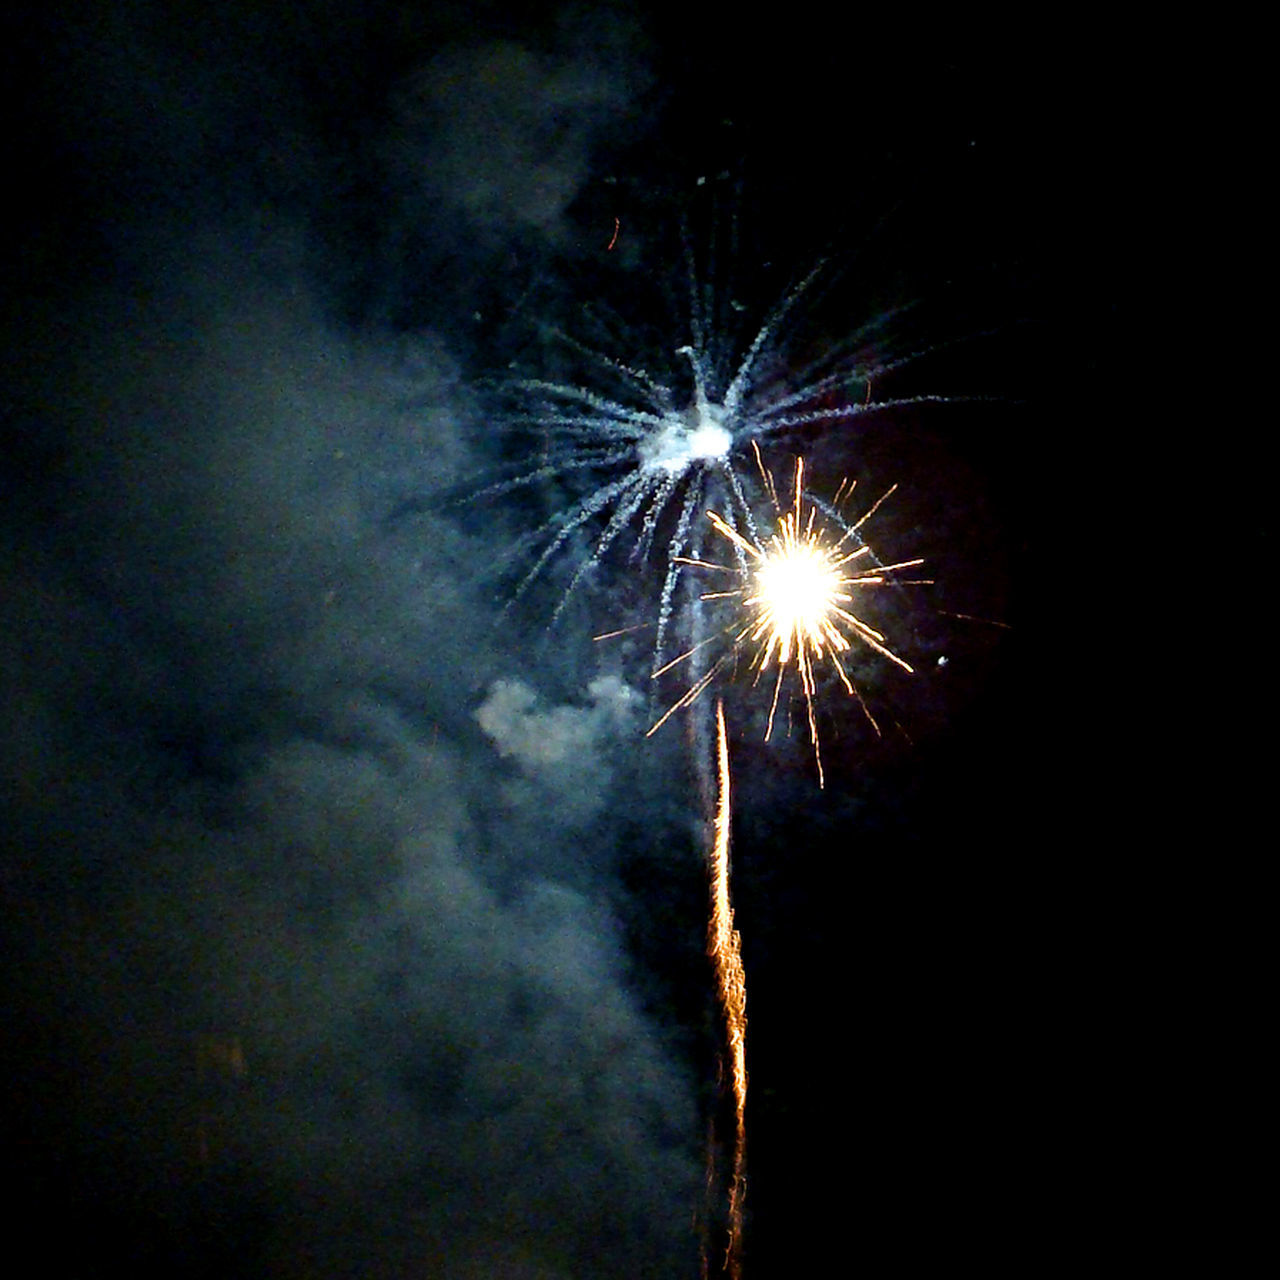 firework display, night, firework - man made object, exploding, low angle view, illuminated, arts culture and entertainment, celebration, long exposure, no people, motion, sky, smoke - physical structure, outdoors, event, firework, nature, close-up